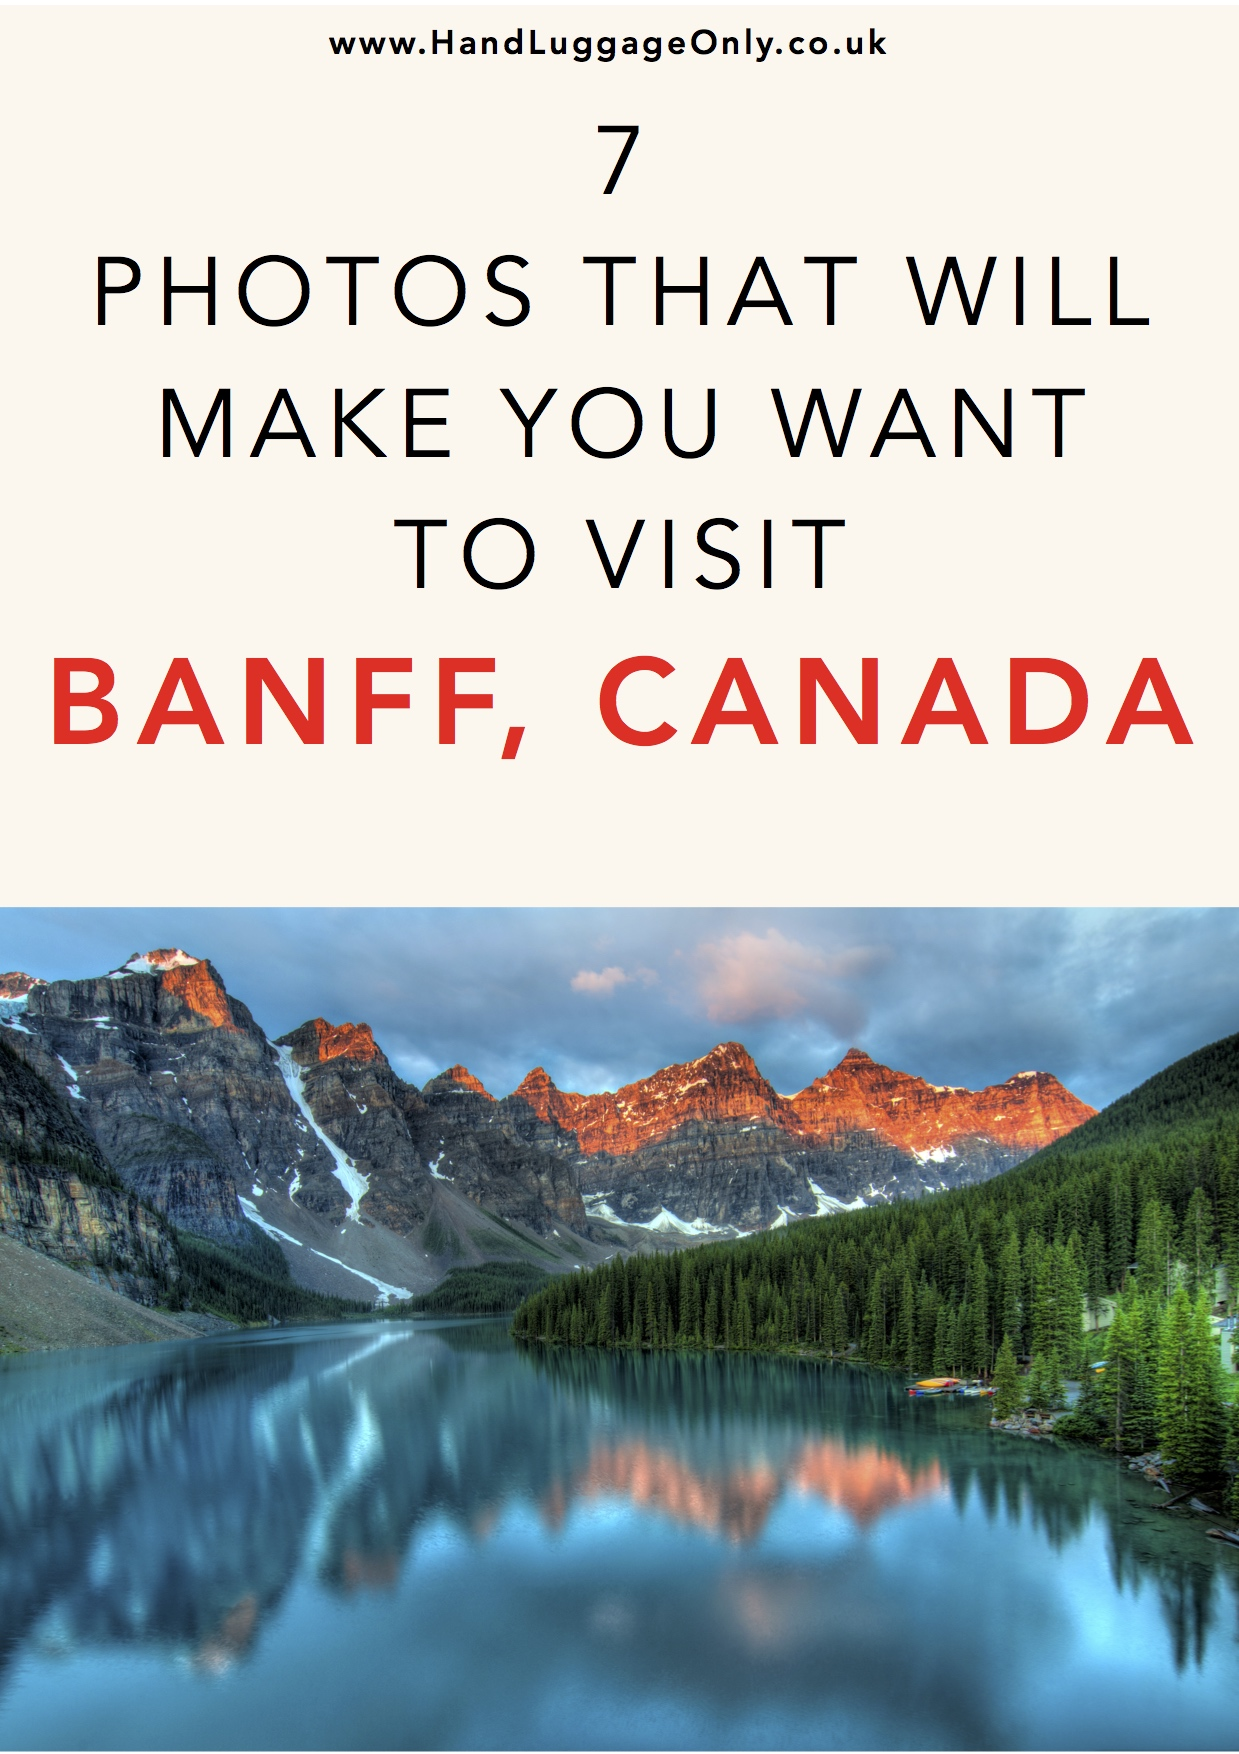 7 Photos That Will Make You Want To Visit Banff, Canada